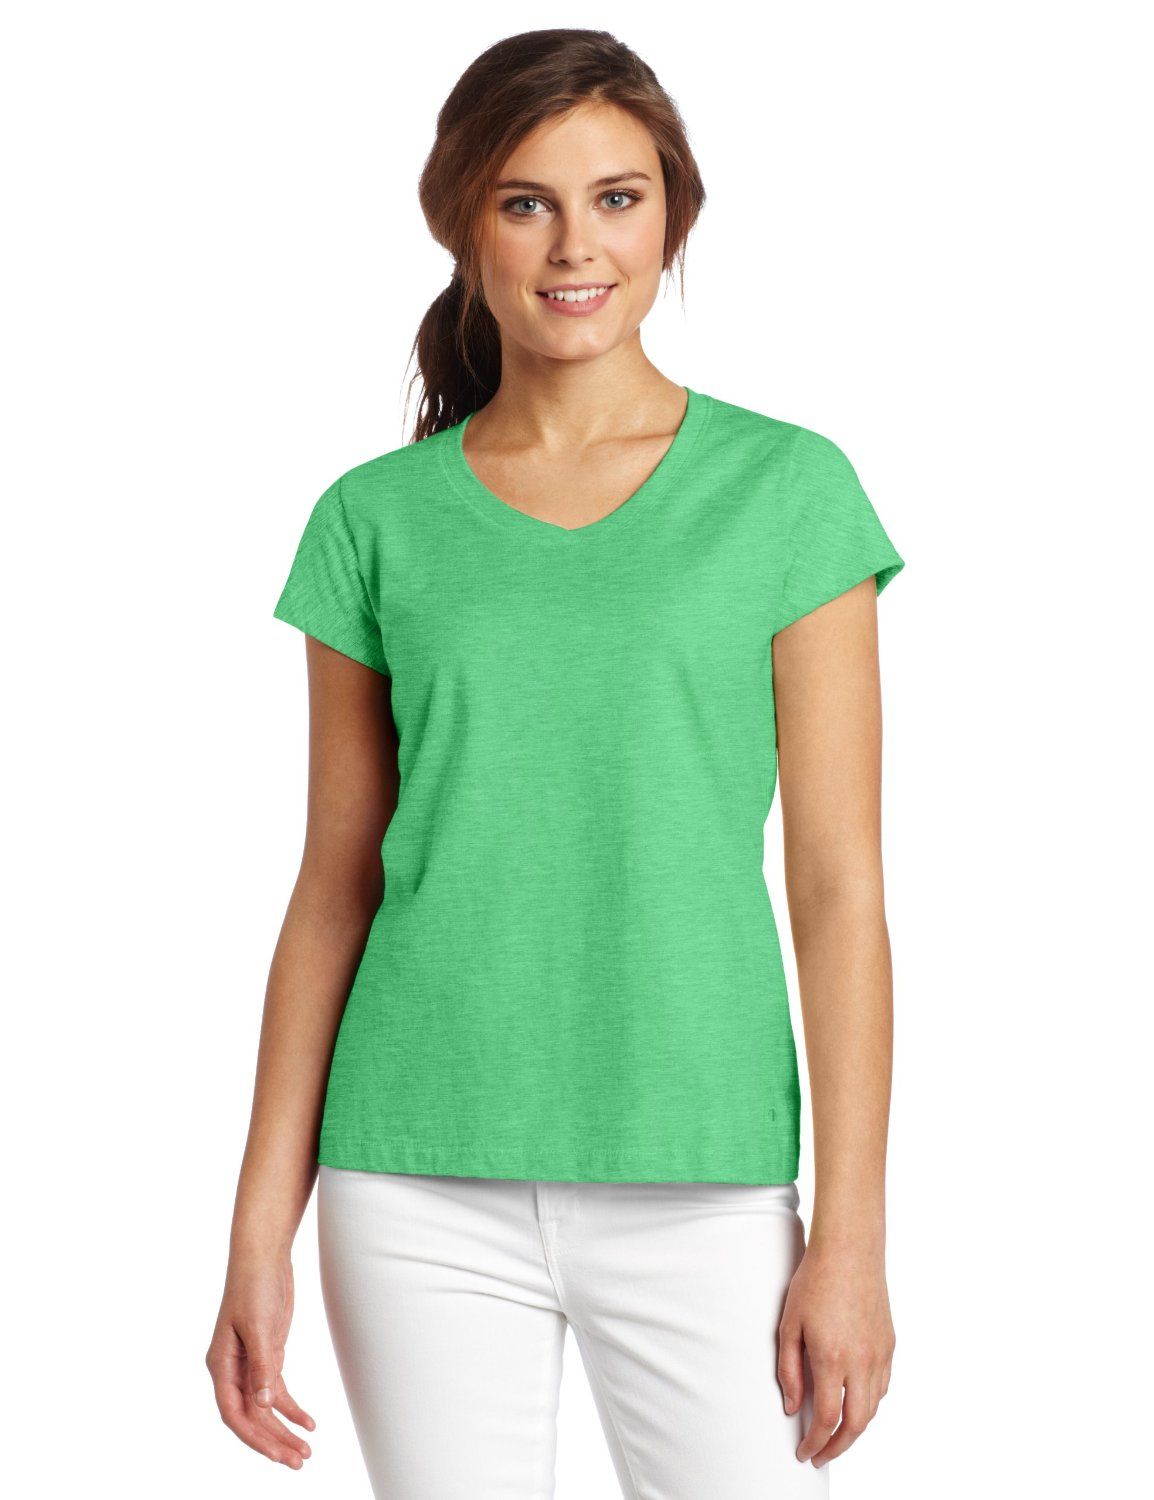 Champion women 39 s t shirts ch7842 champion 100 cotton v for Women s embellished t shirts